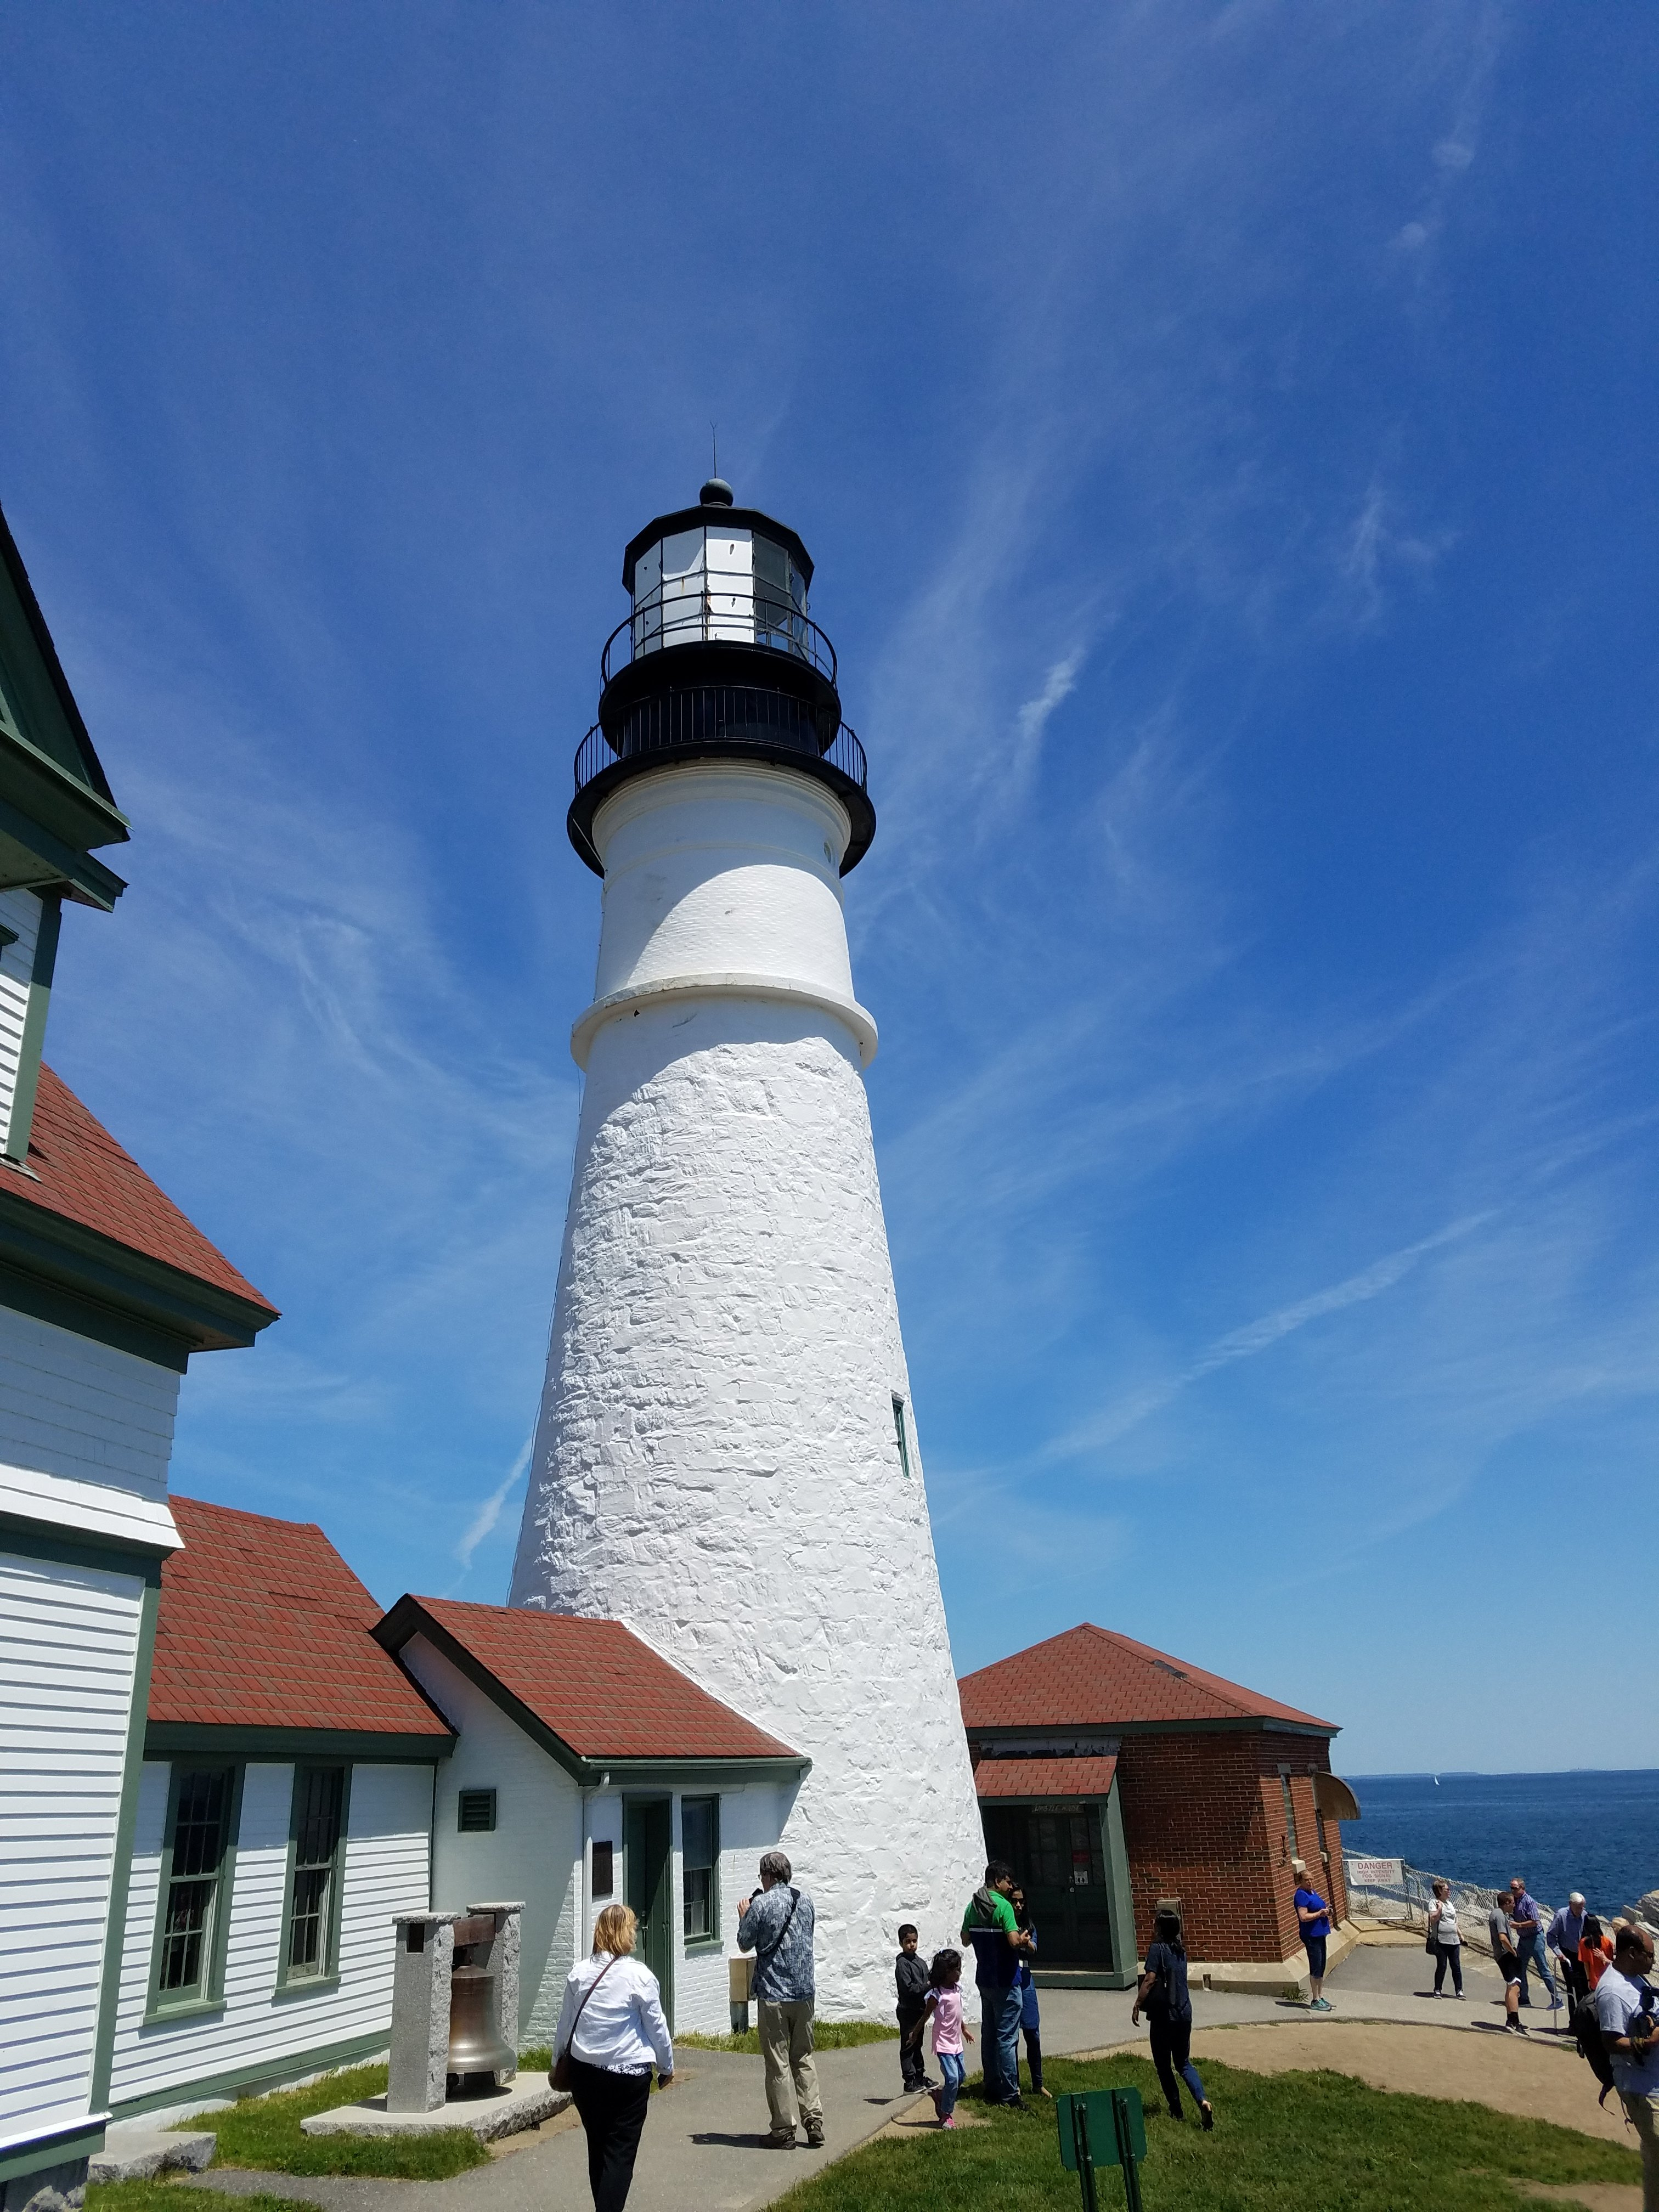 Saturday June 8 - Kennebunk to Bar Harbor